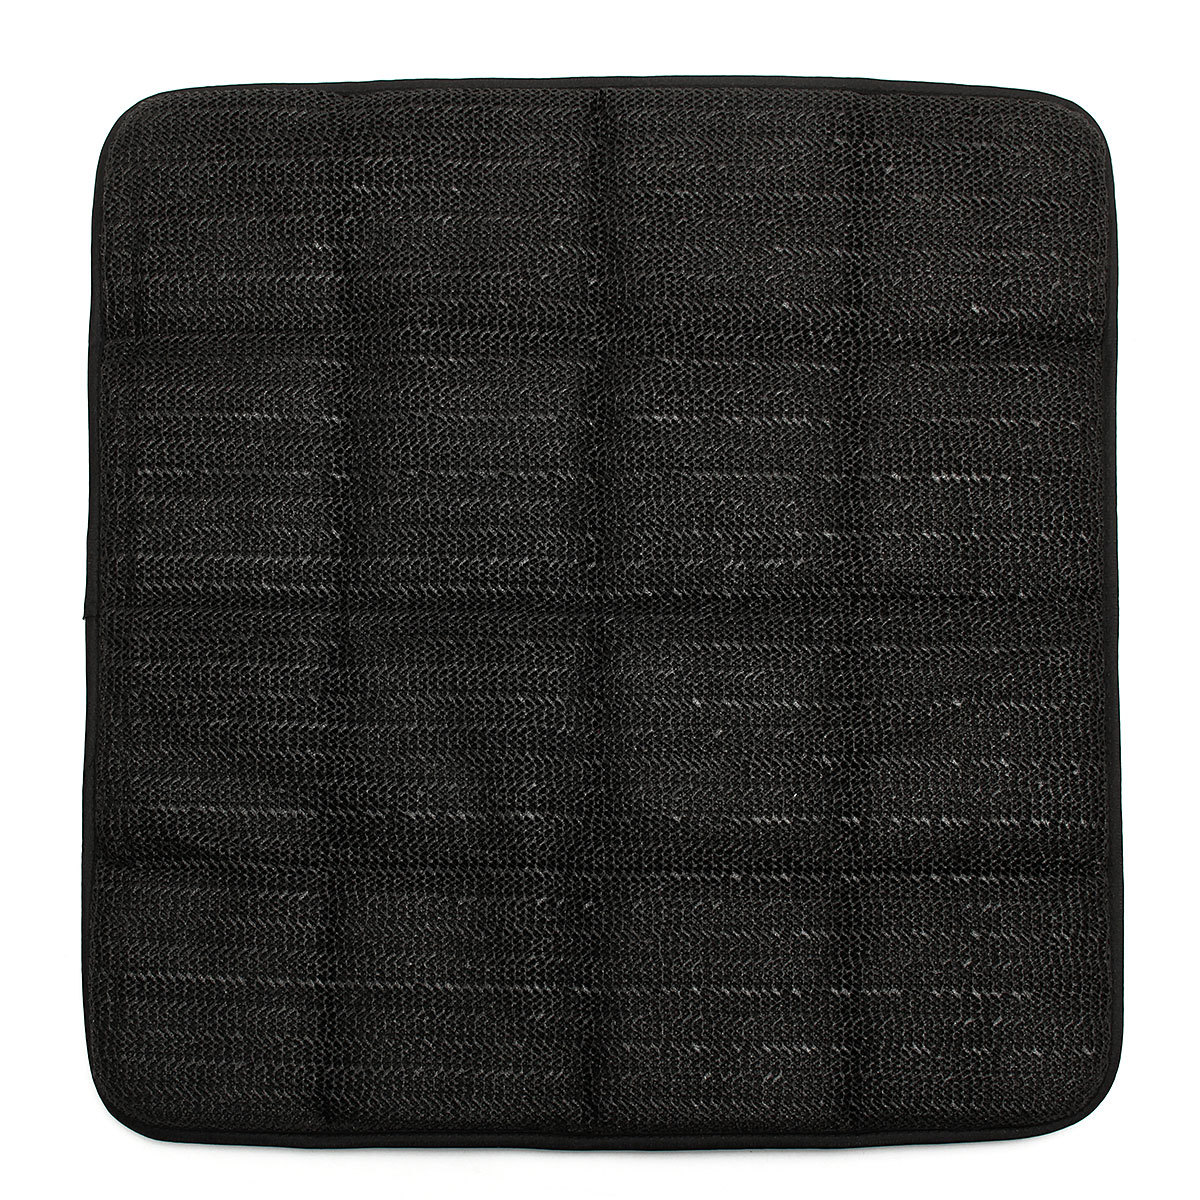 office chair seat covers black solid gold wheelchair bamboo charcoal breathable cushion cover pad mat for